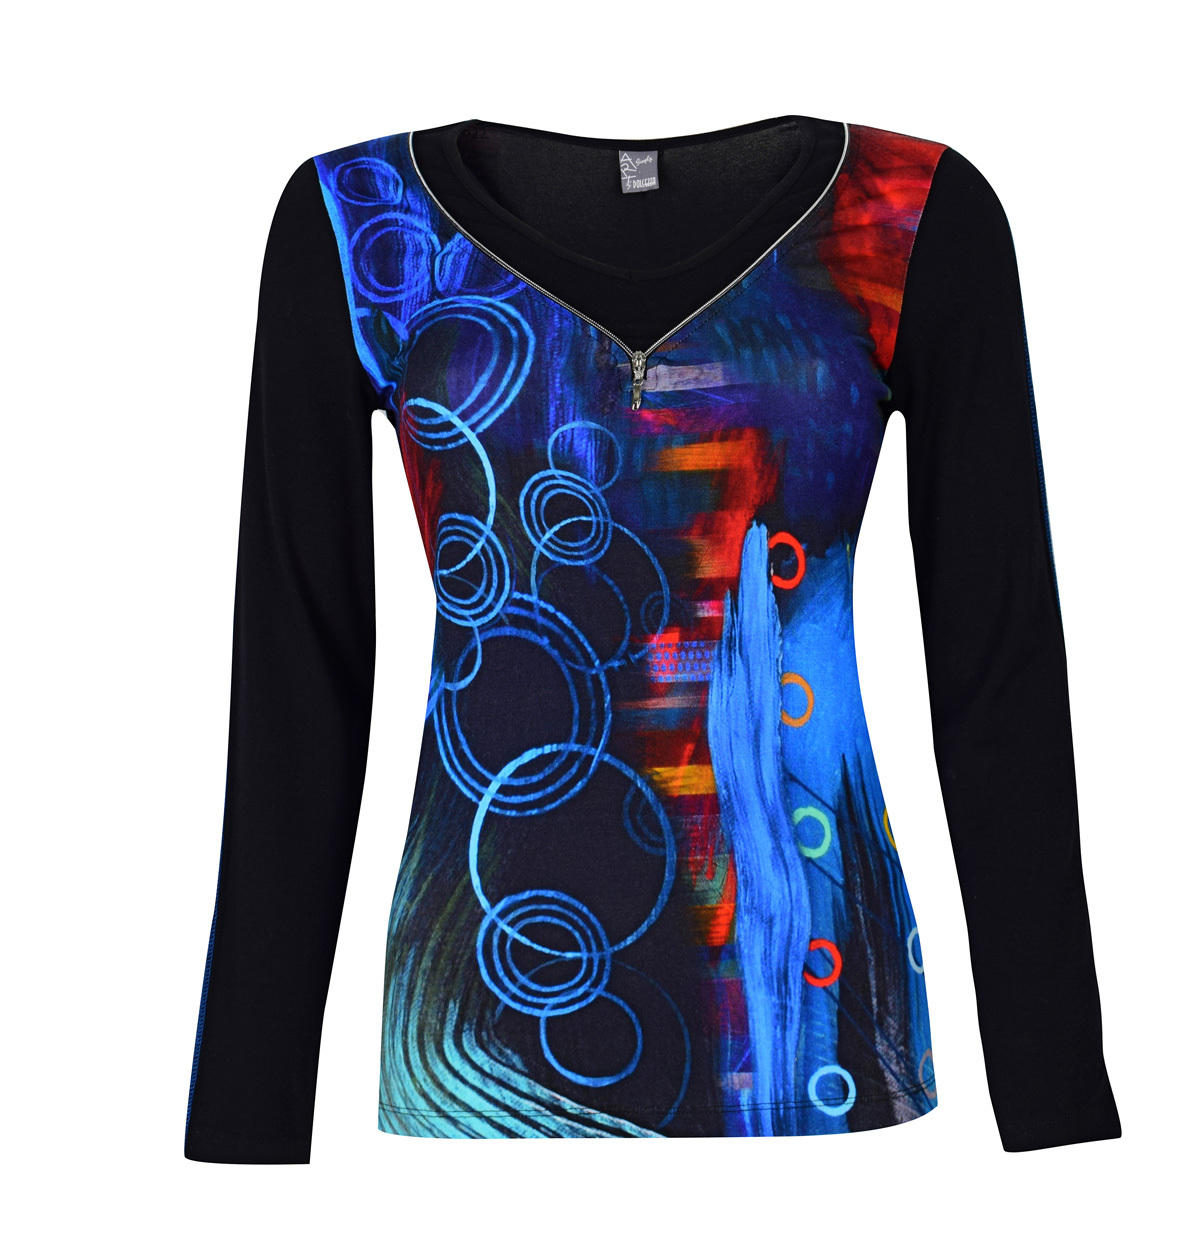 Simply Art Dolcezza: Distilling Color Zip Neck Abstract Art Top (1 Left!)